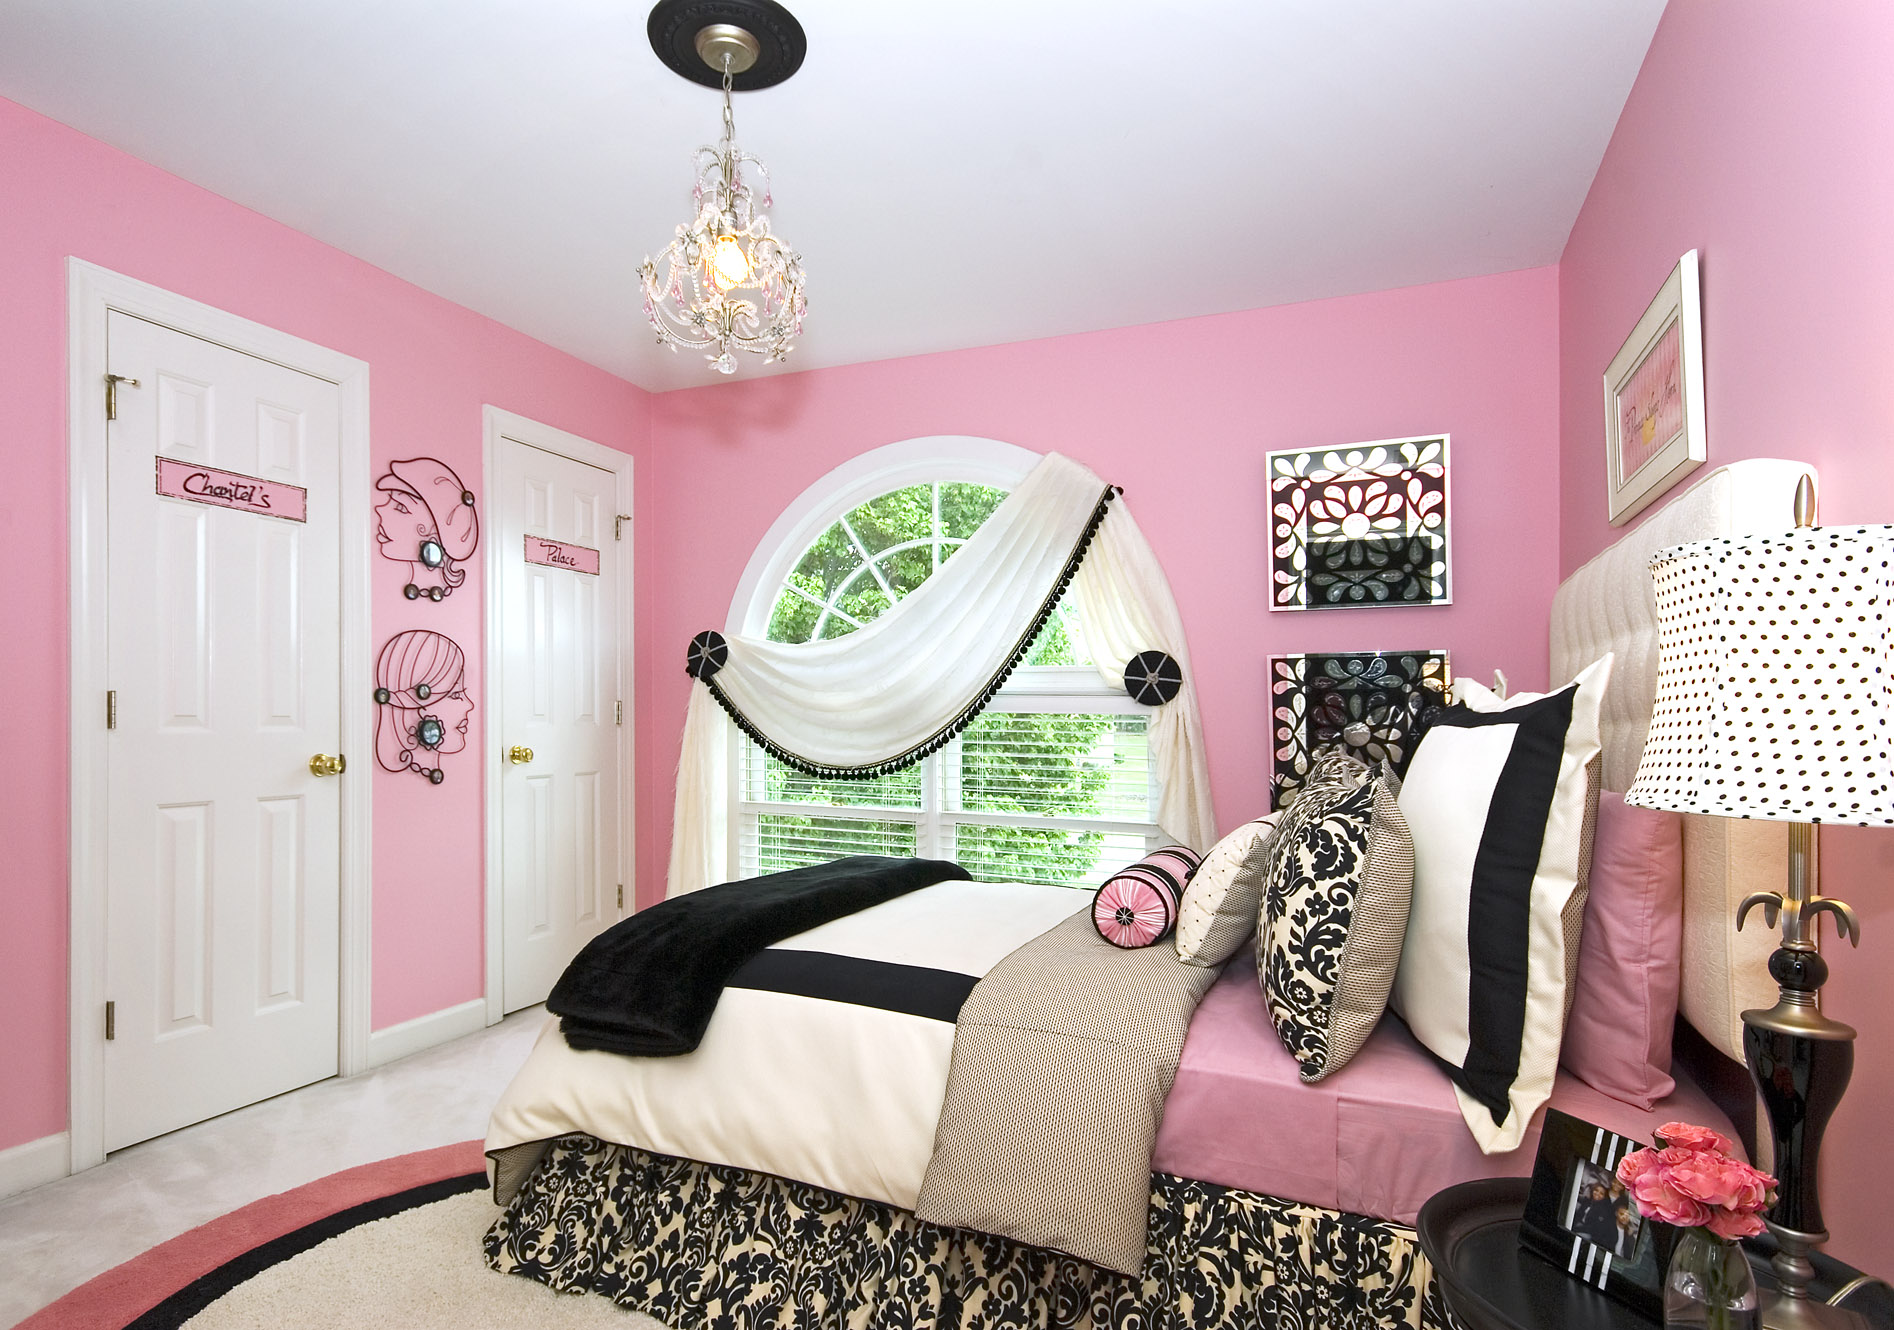 Affordable The Abcus Of Decoratingk Is For Kidus Rooms Decorating Den With Clever  Bedroom Decorating Ideas. Awesome Ideas